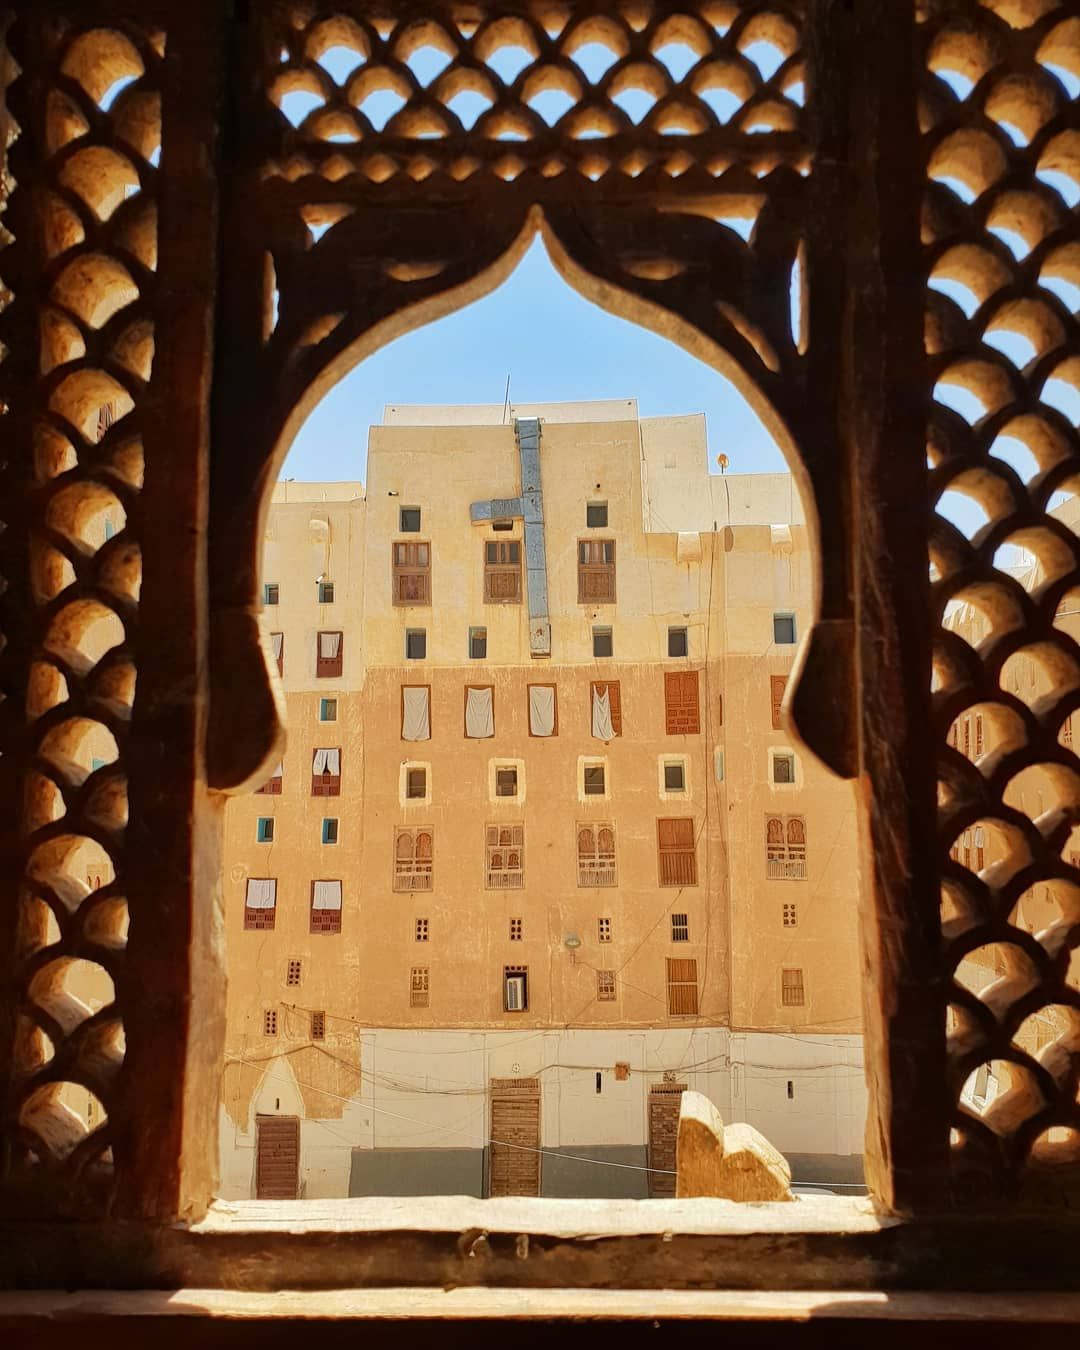 Wooden decorated window in shibam old city unesco world heritage site in yemen